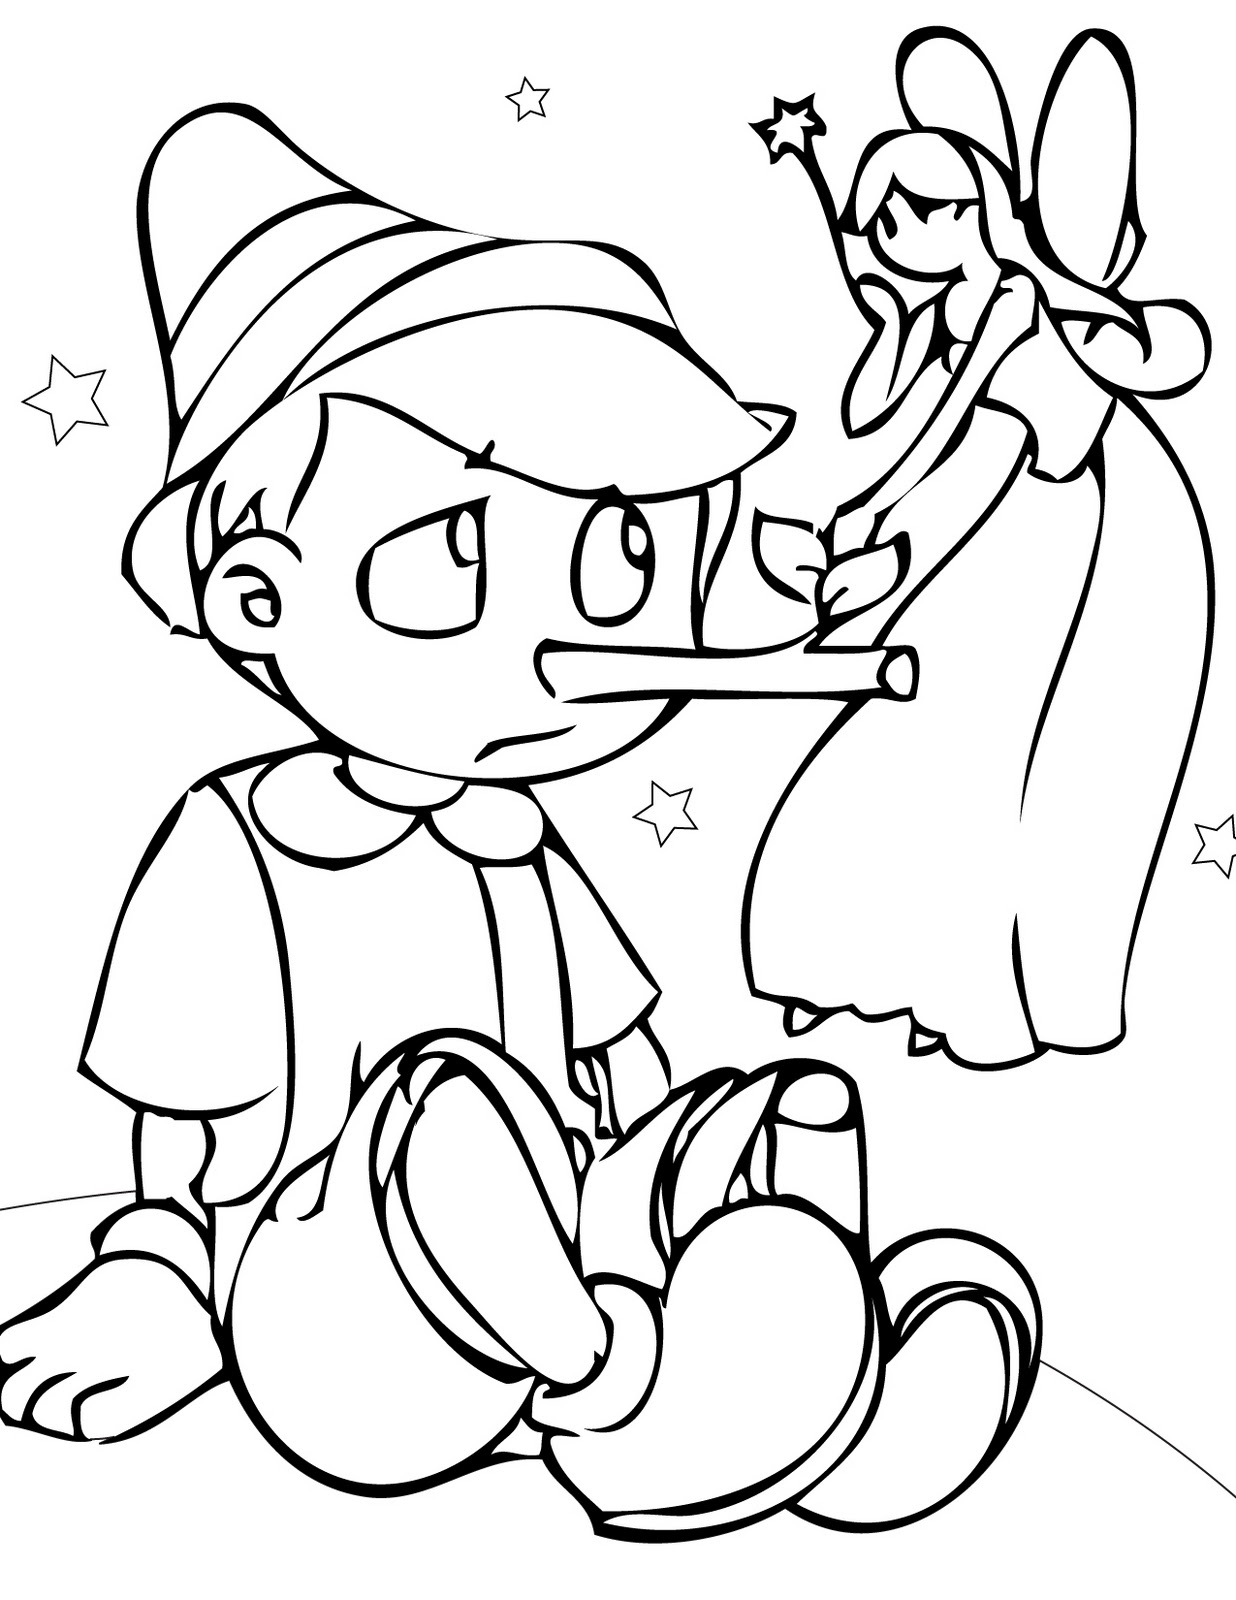 Pinocchio printable of disney characters for drawing kids